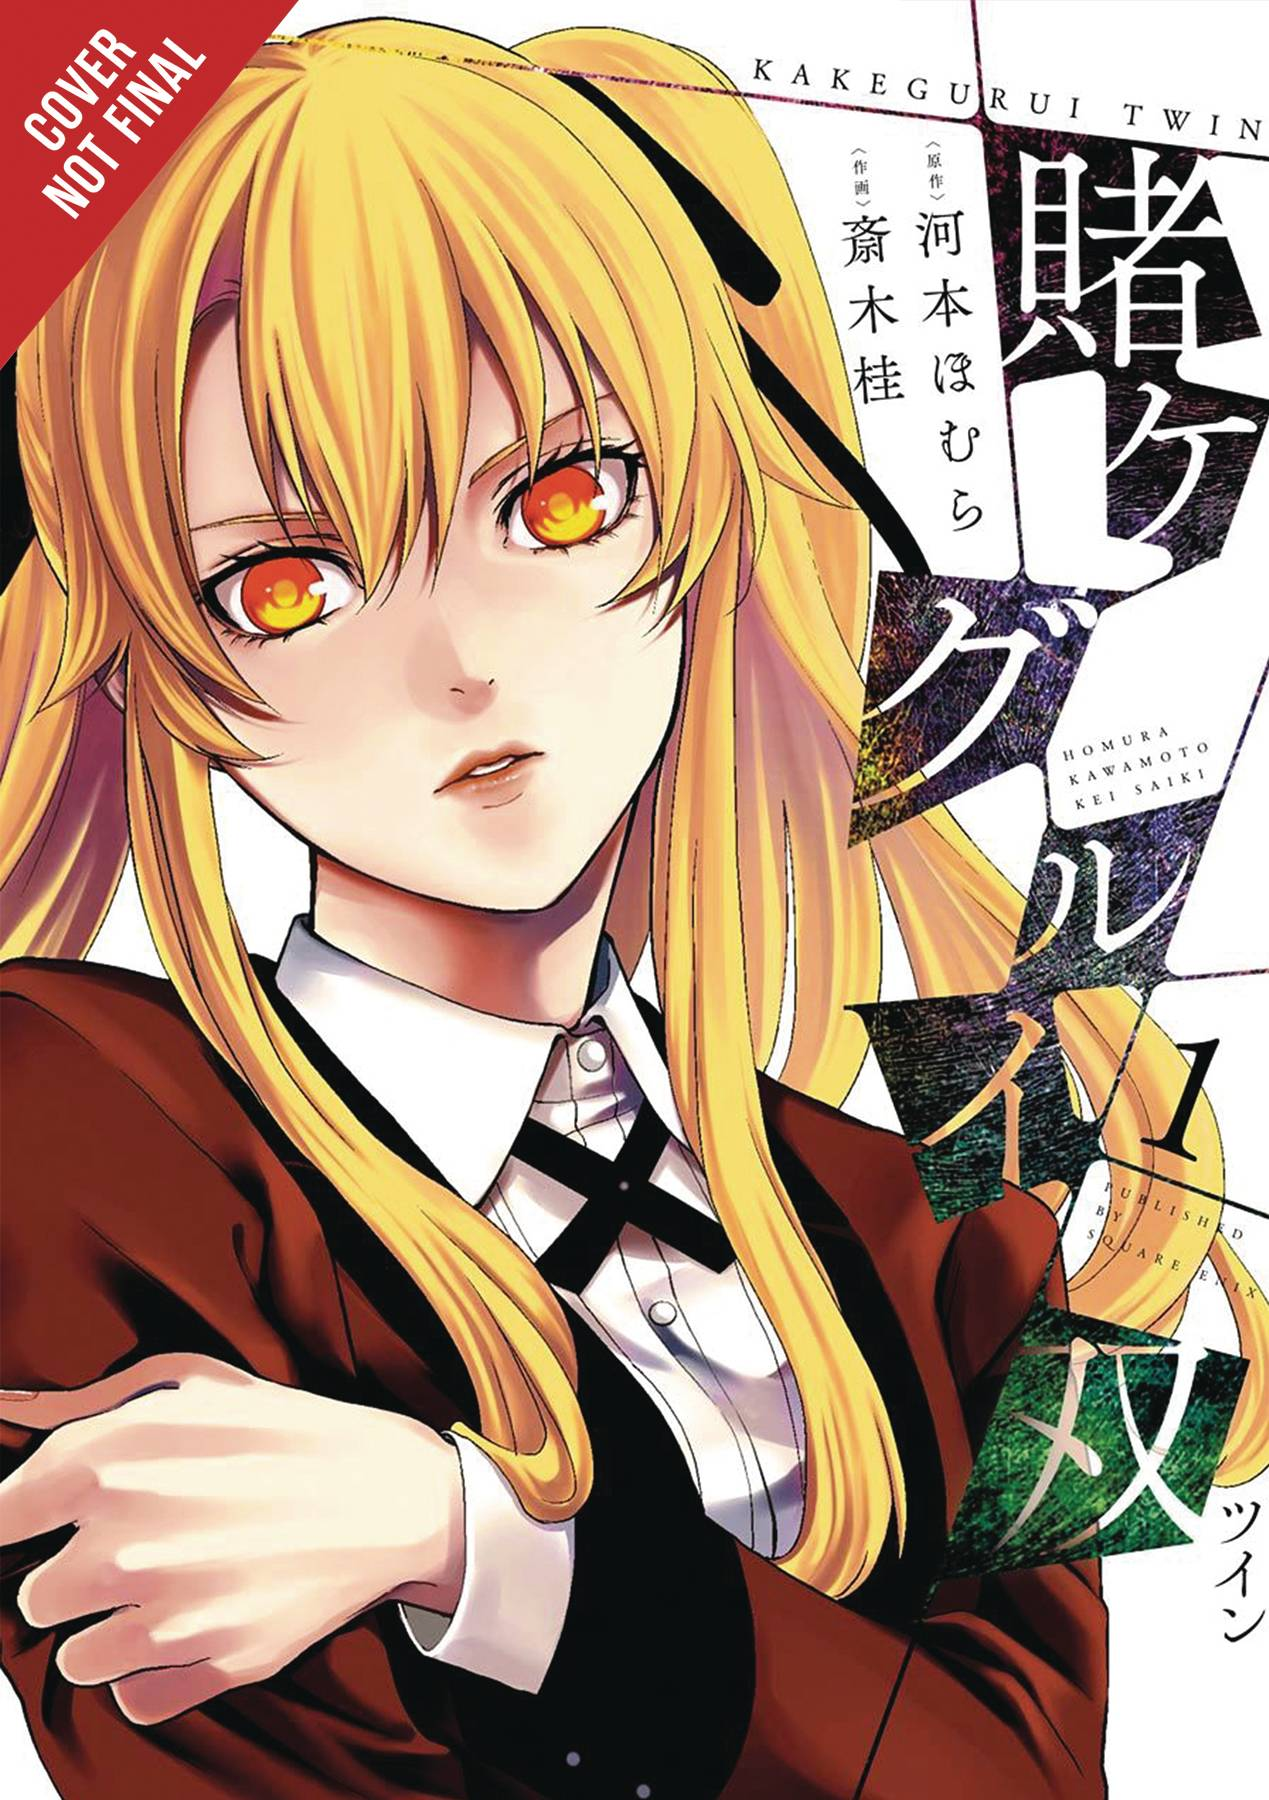 KAKEGURUI TWIN GN VOL 01 (MR)